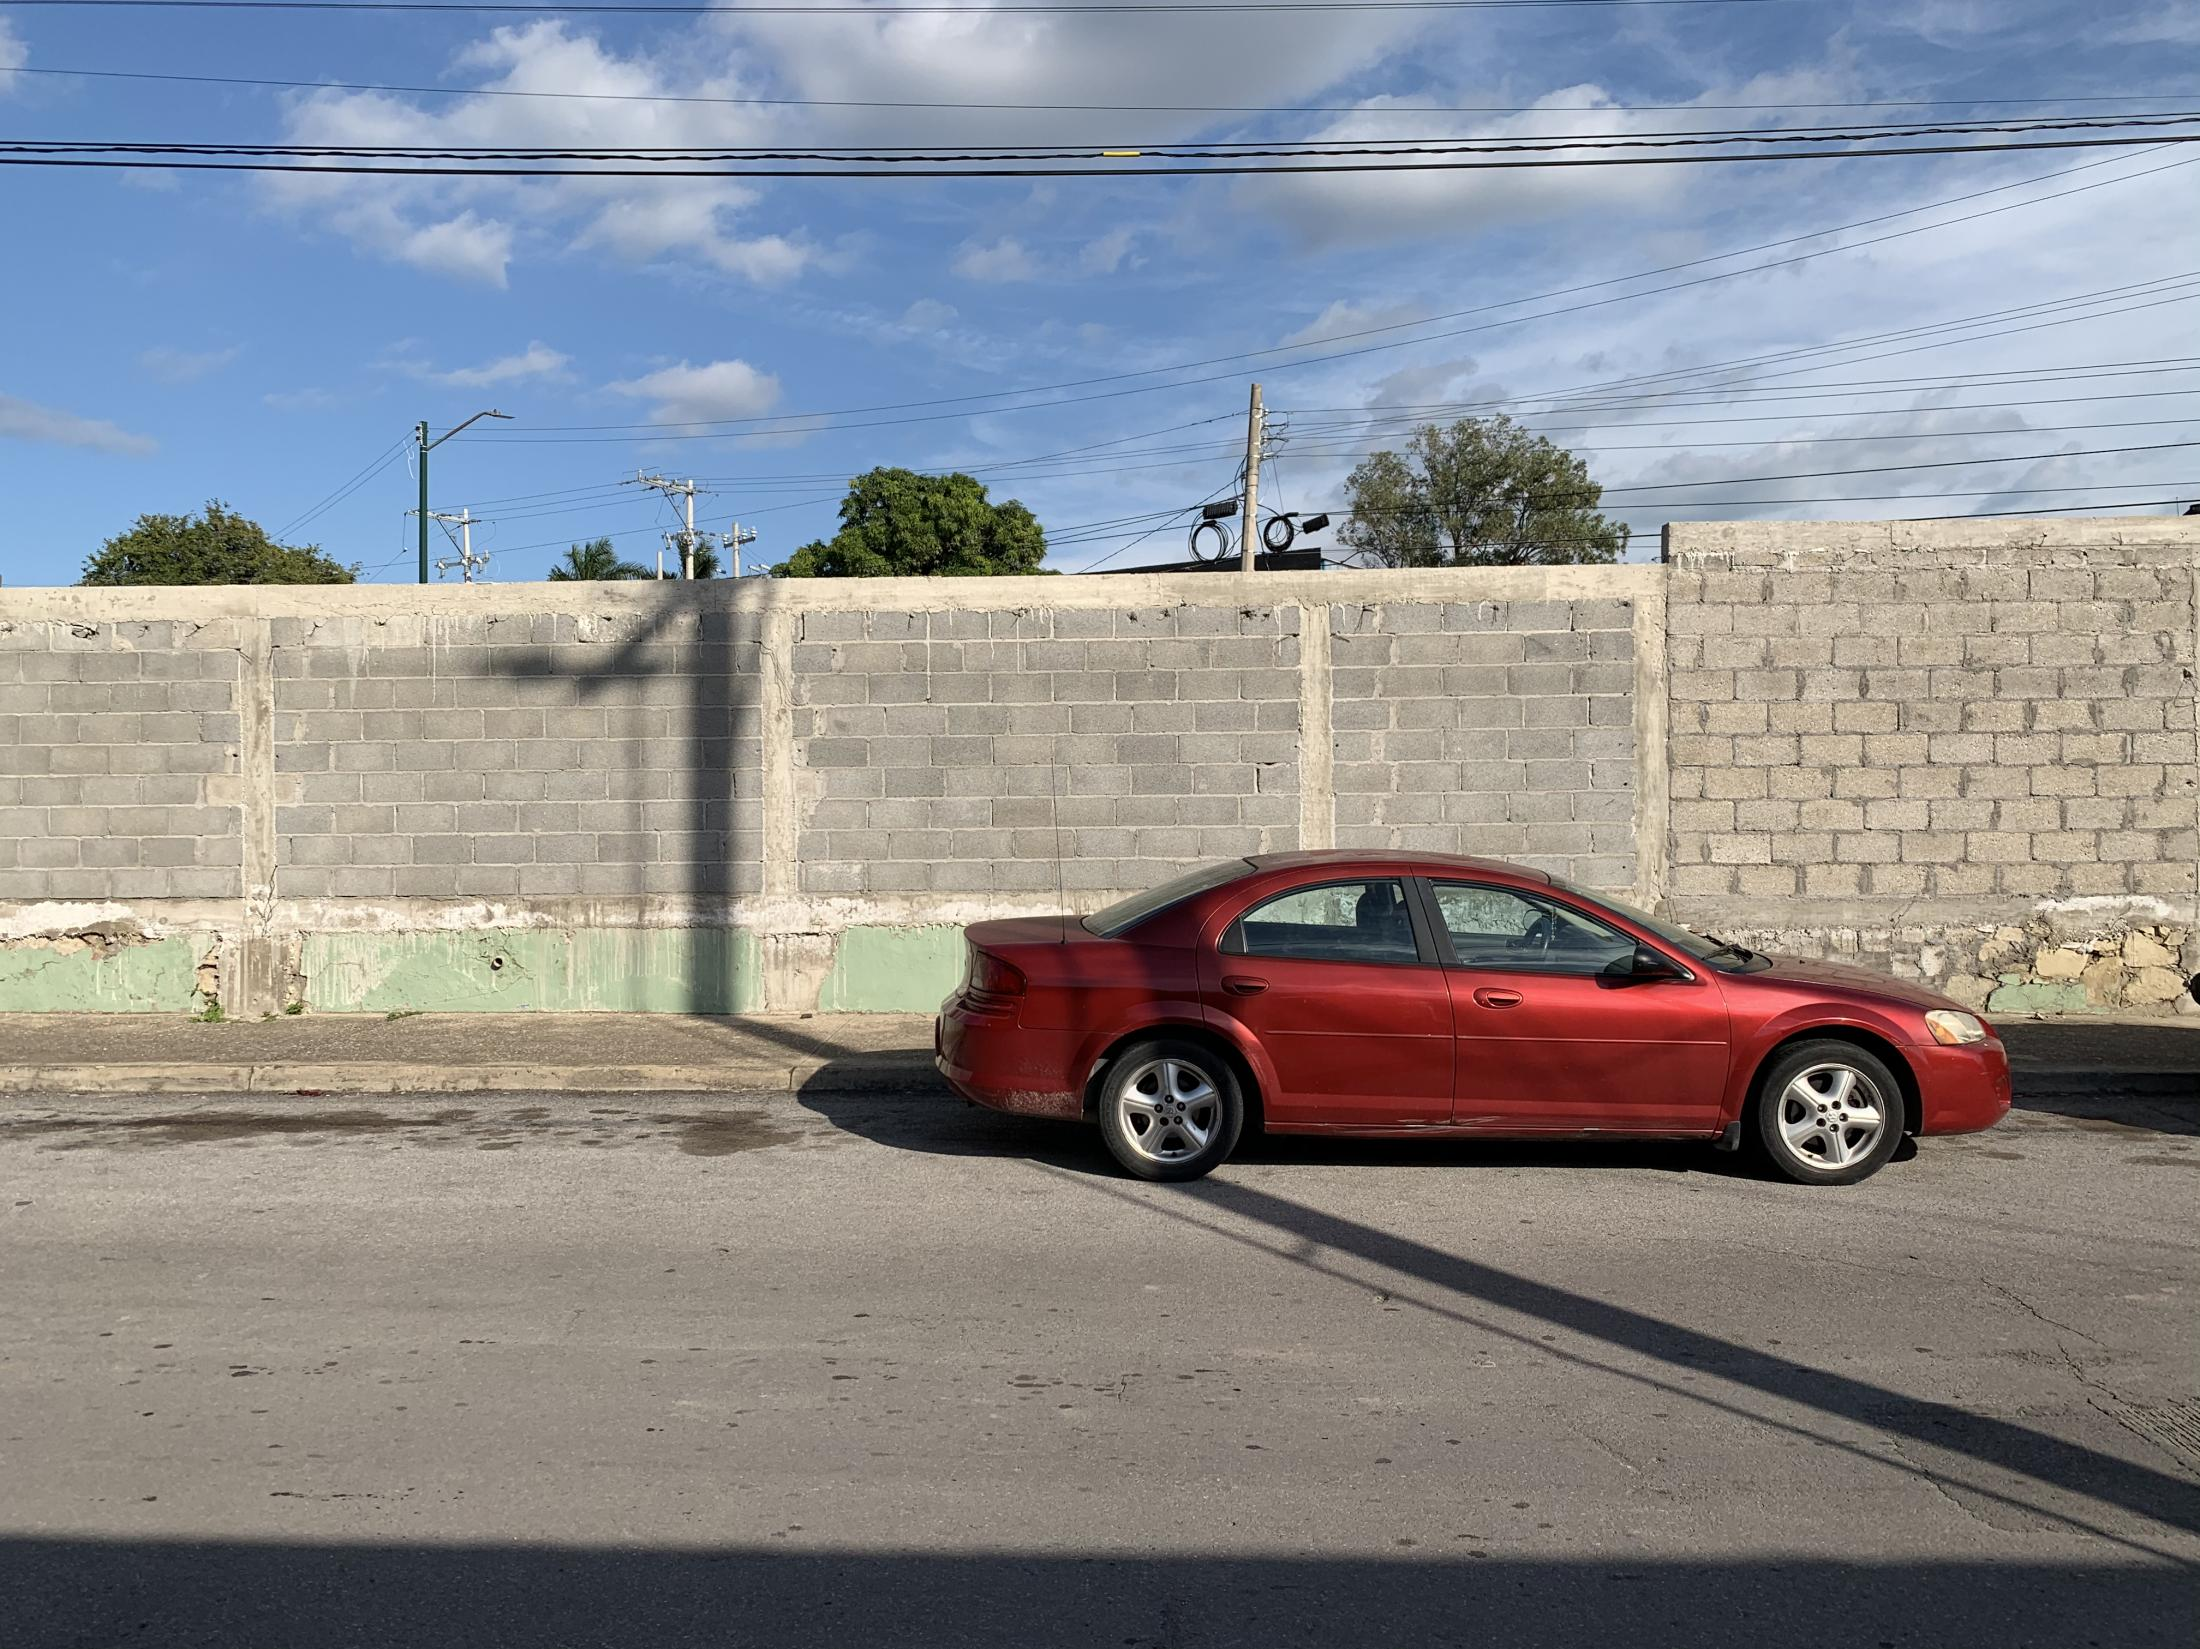 Tampico, Tamaulipas México. 2019. A parked red car next to a brick wall from a construction site. This is the street I walked every other day during one semester to go to work.